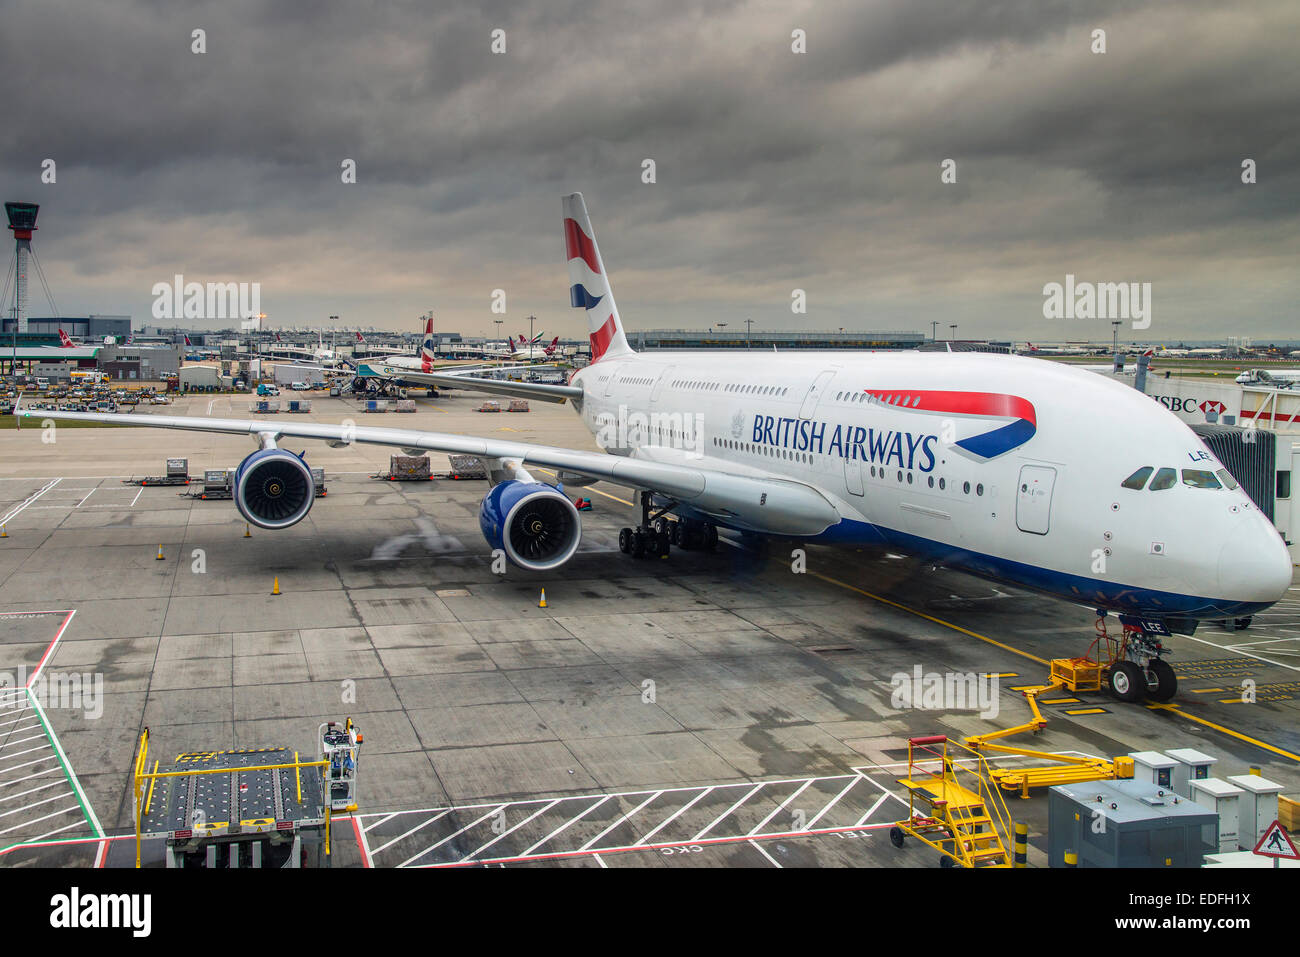 British Airways Airbus A380 at Terminal 5, Heathrow international airport, London, United Kingdom - Stock Image